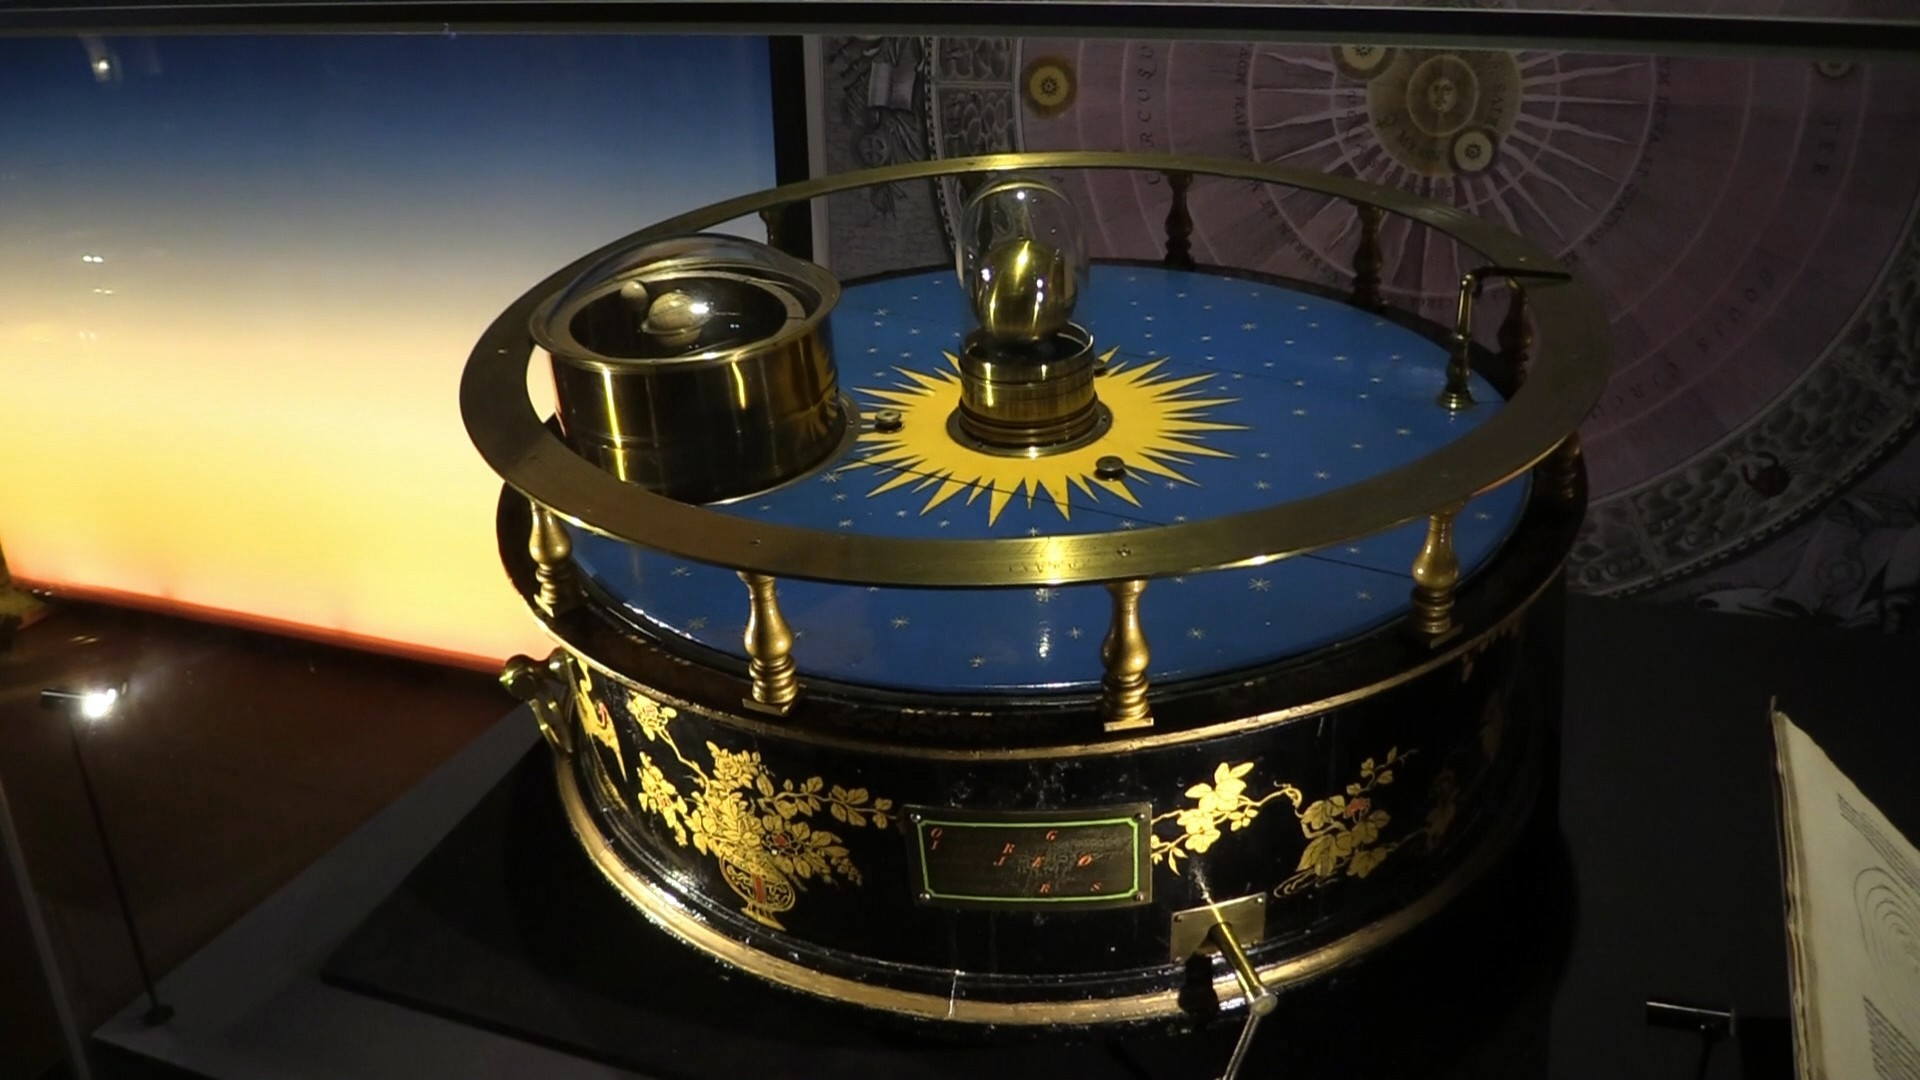 A model of the solar system produced by British device designer John Rowley in 1712.